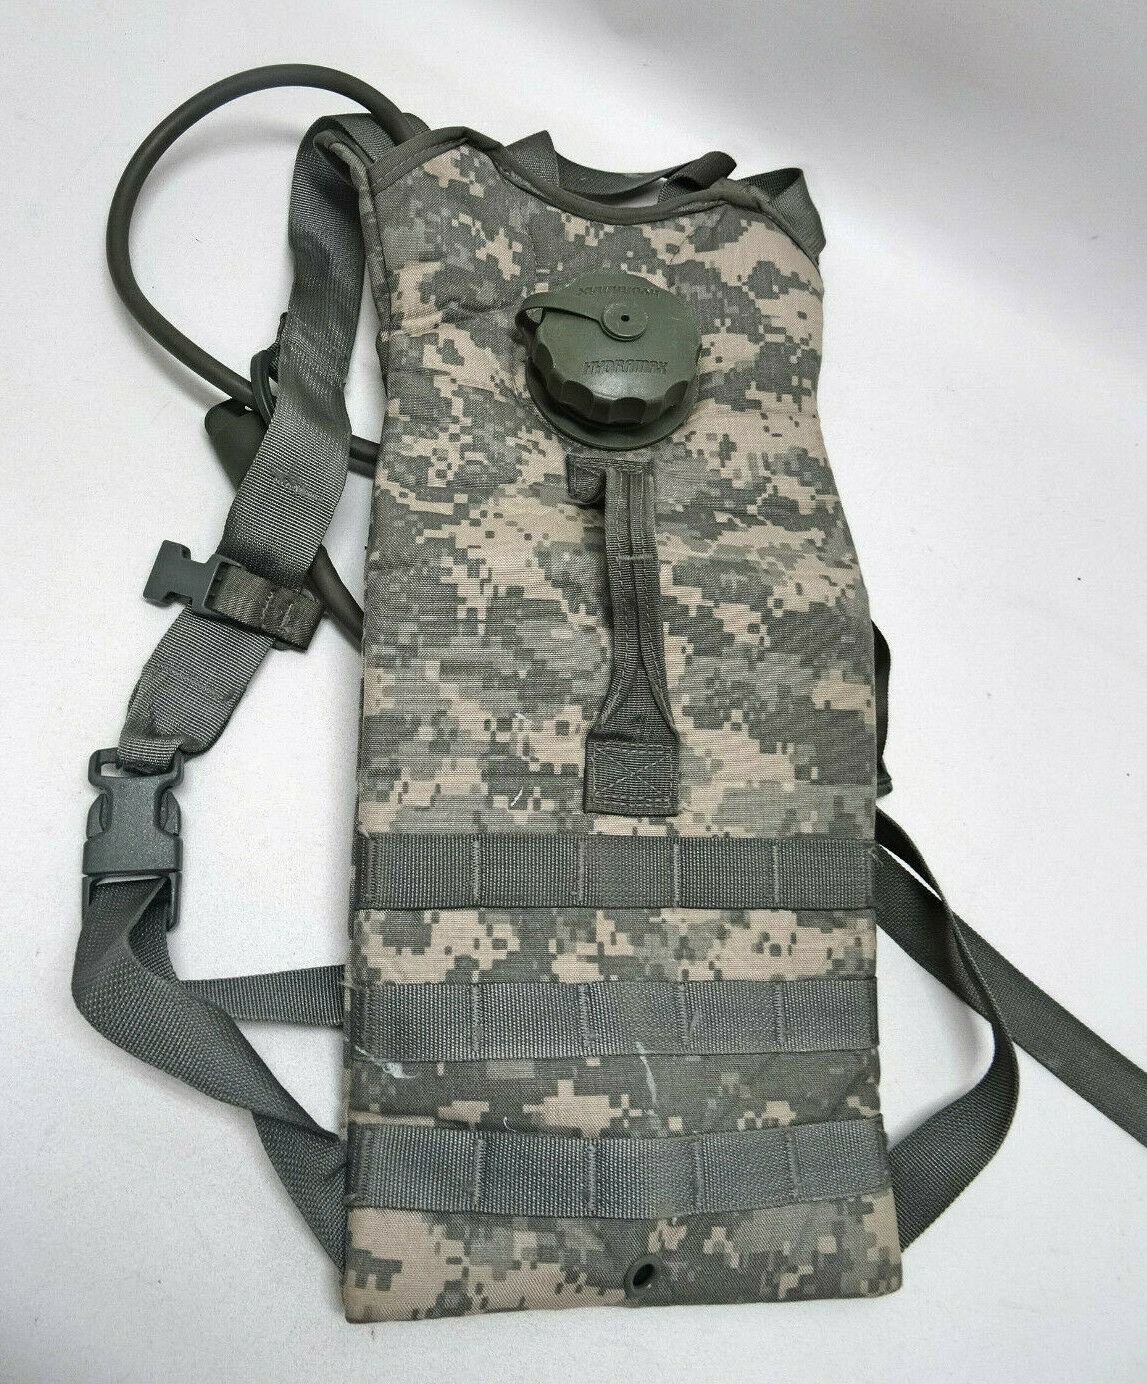 MOLLE II HYDRATION CARRIER WHYDRAMAX BLADDER  MILITARY ISSUECAMOUFLAGEEUC